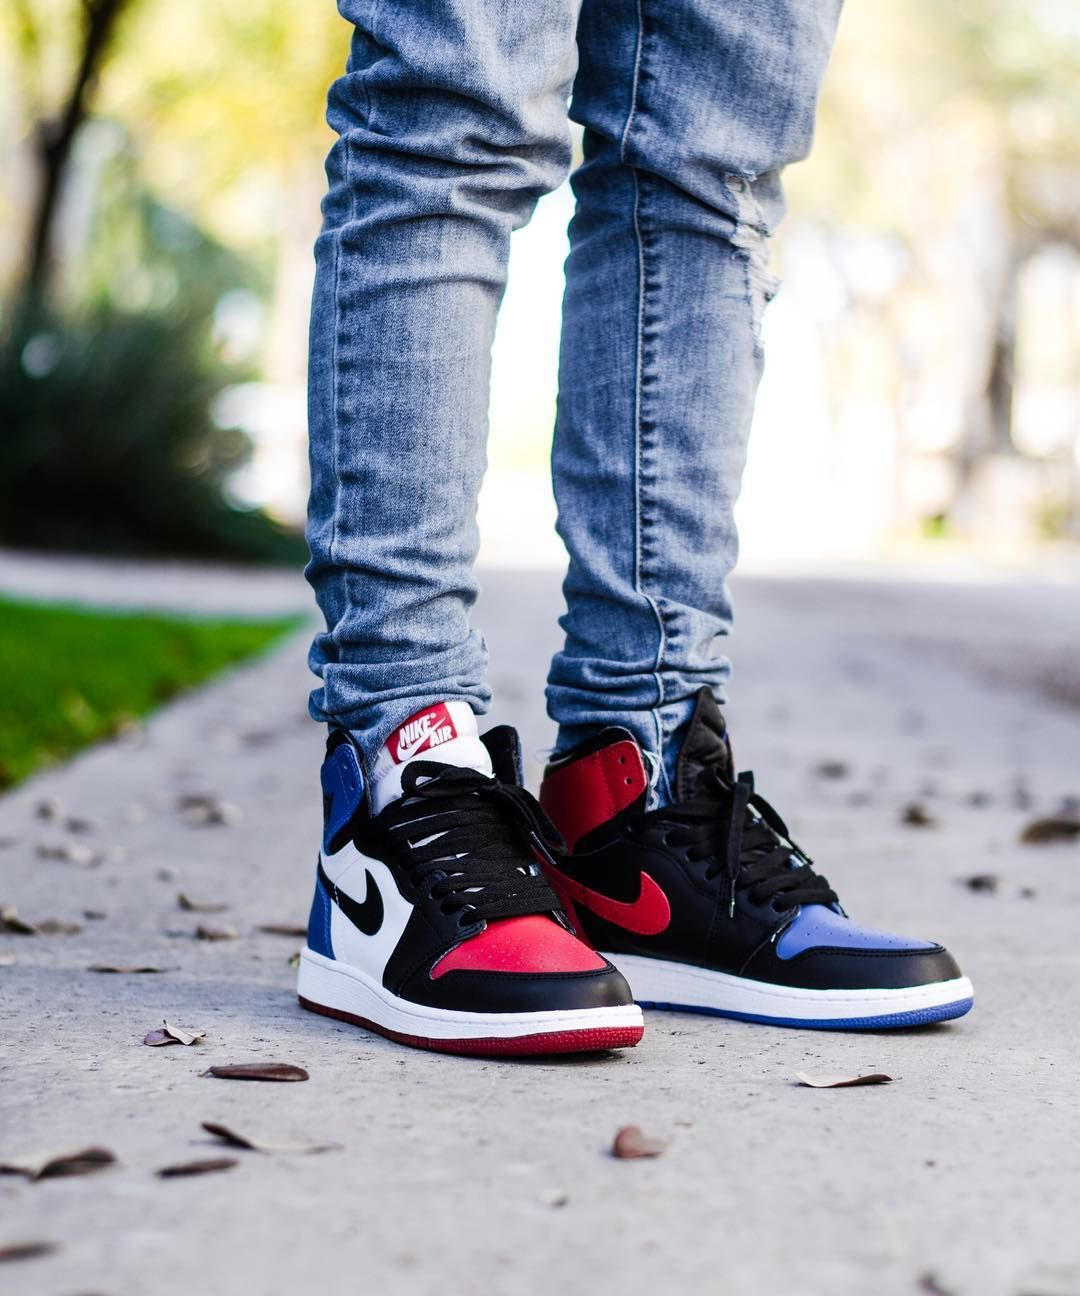 Air Jordan 1 Retro High Og Top 3 With Images Hype Shoes